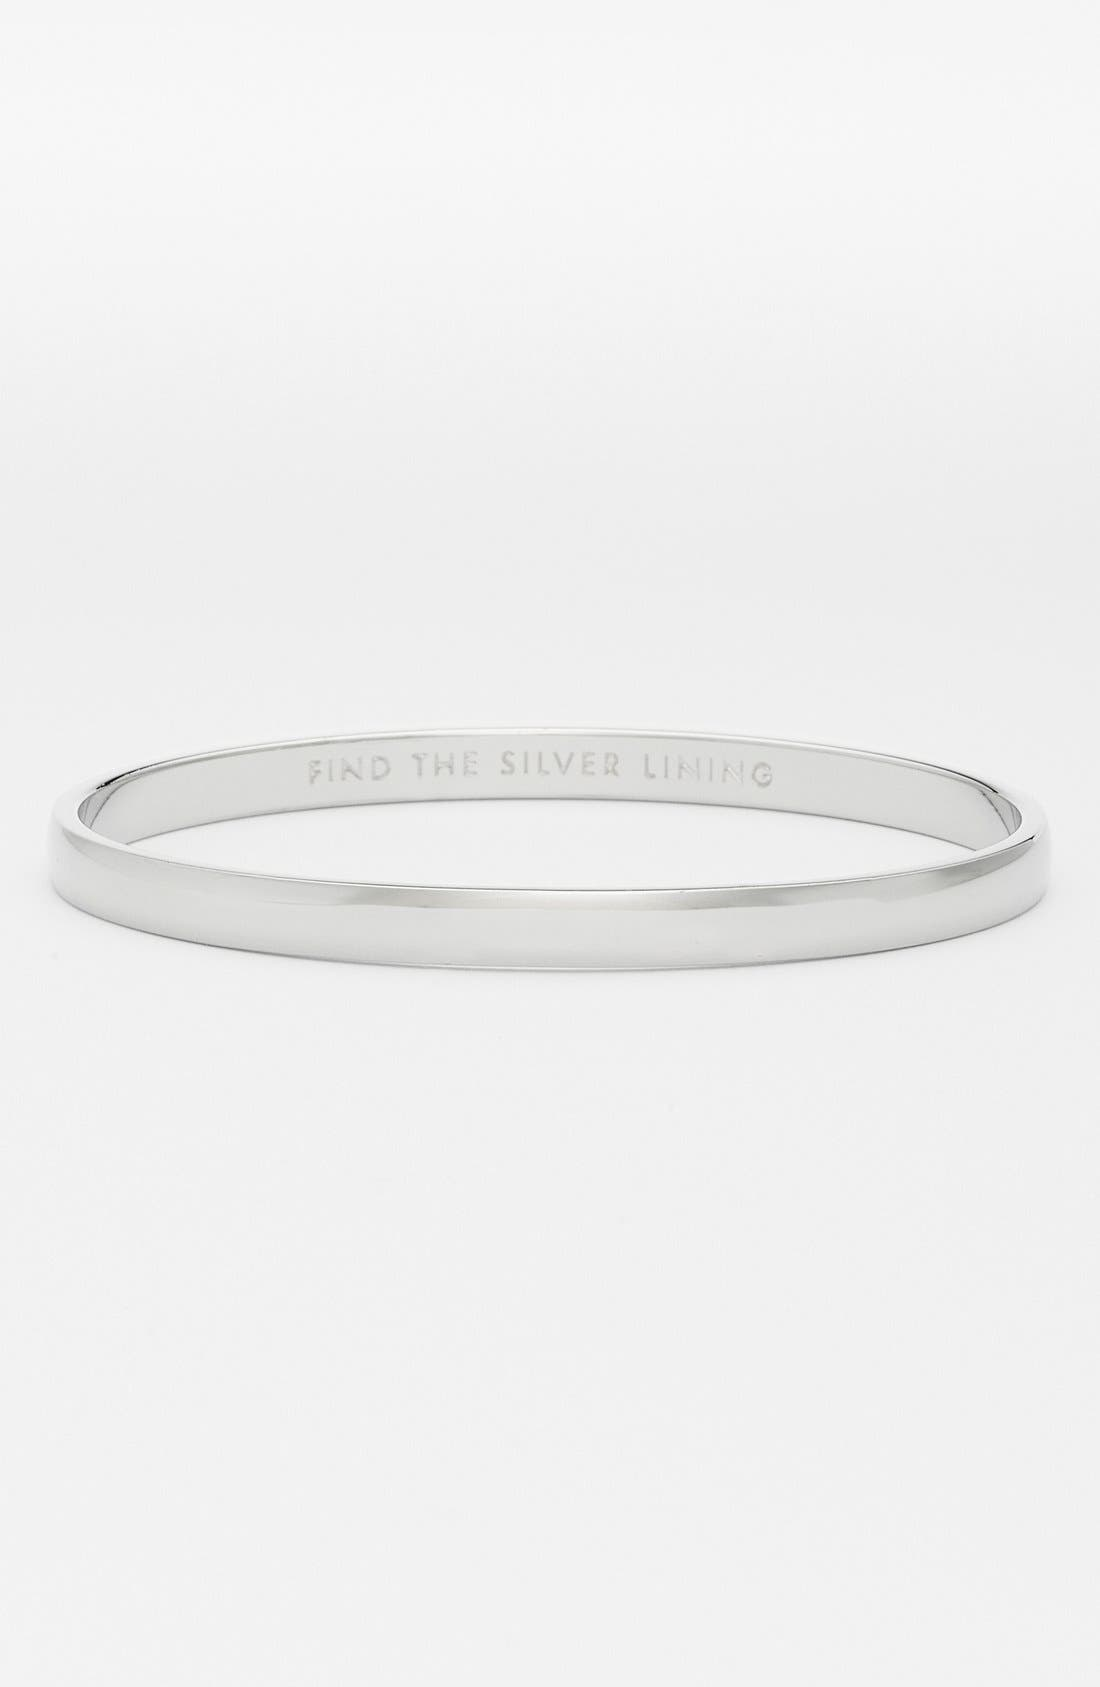 Alternate Image 1 Selected - kate spade new york 'idiom - find the silver lining' bangle